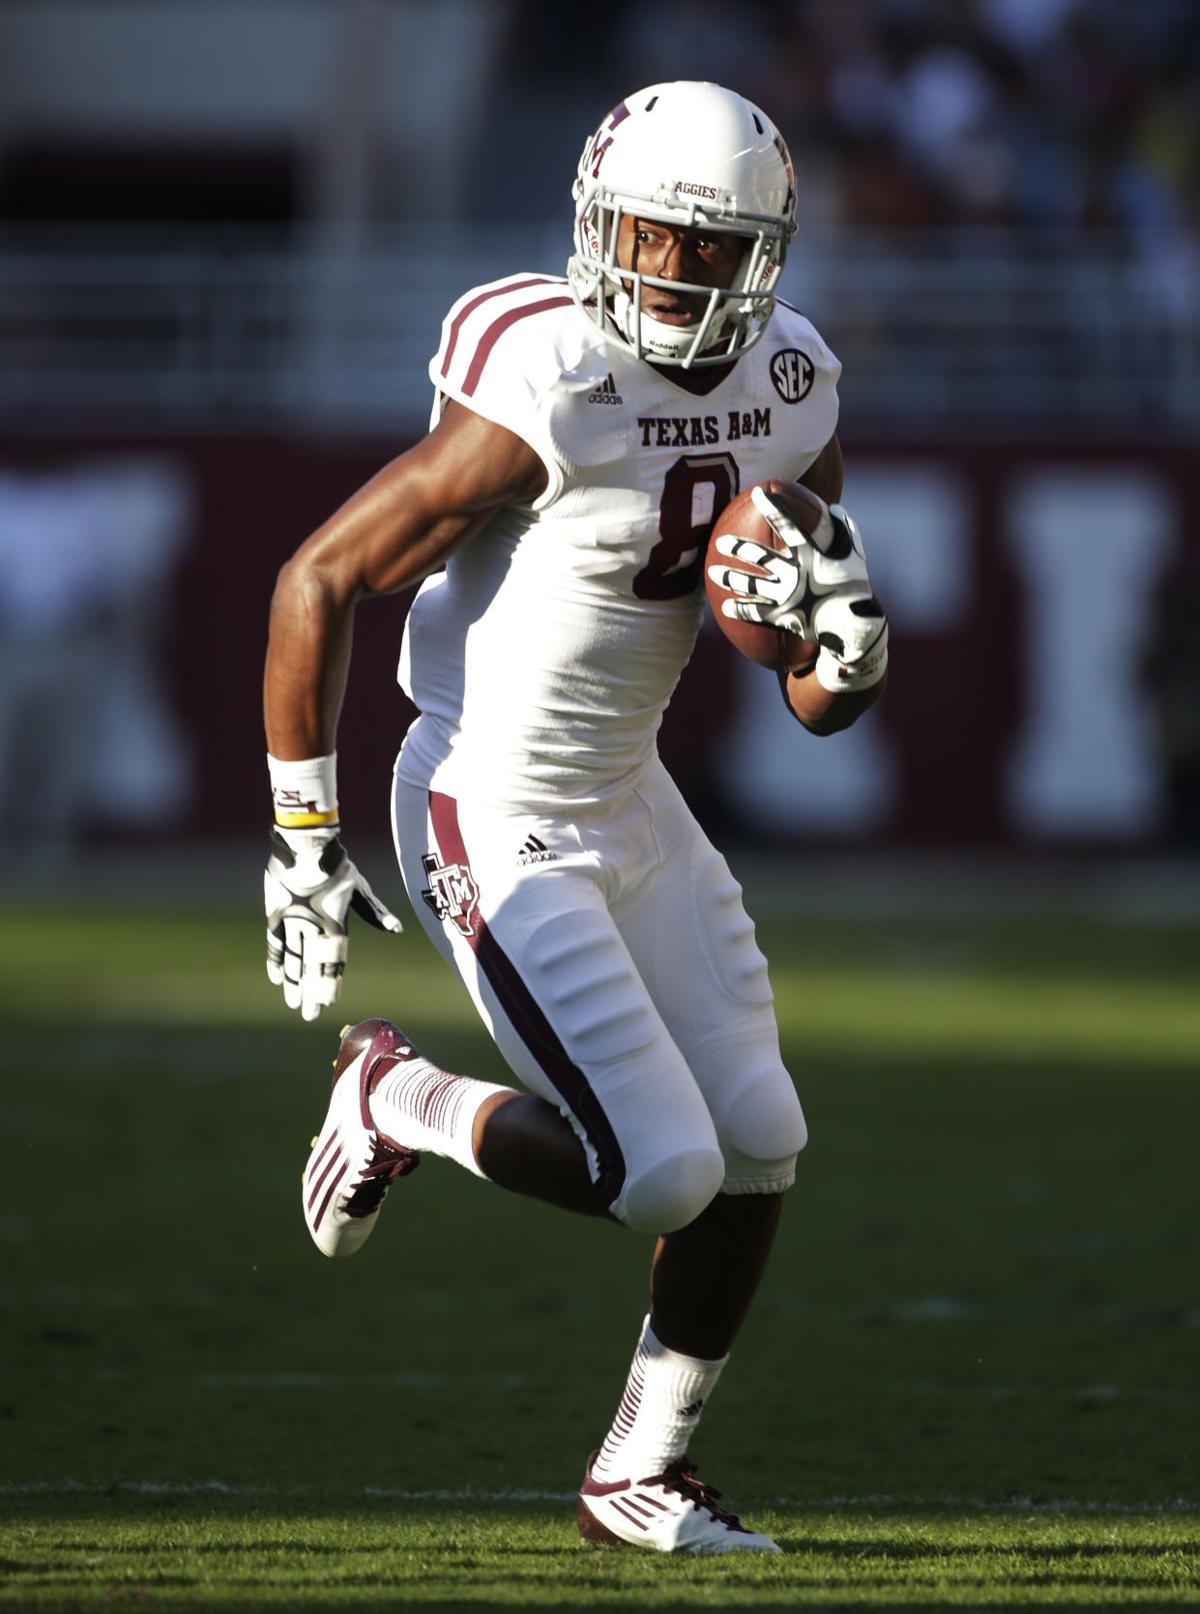 Ex Texas A&M Player Slaying